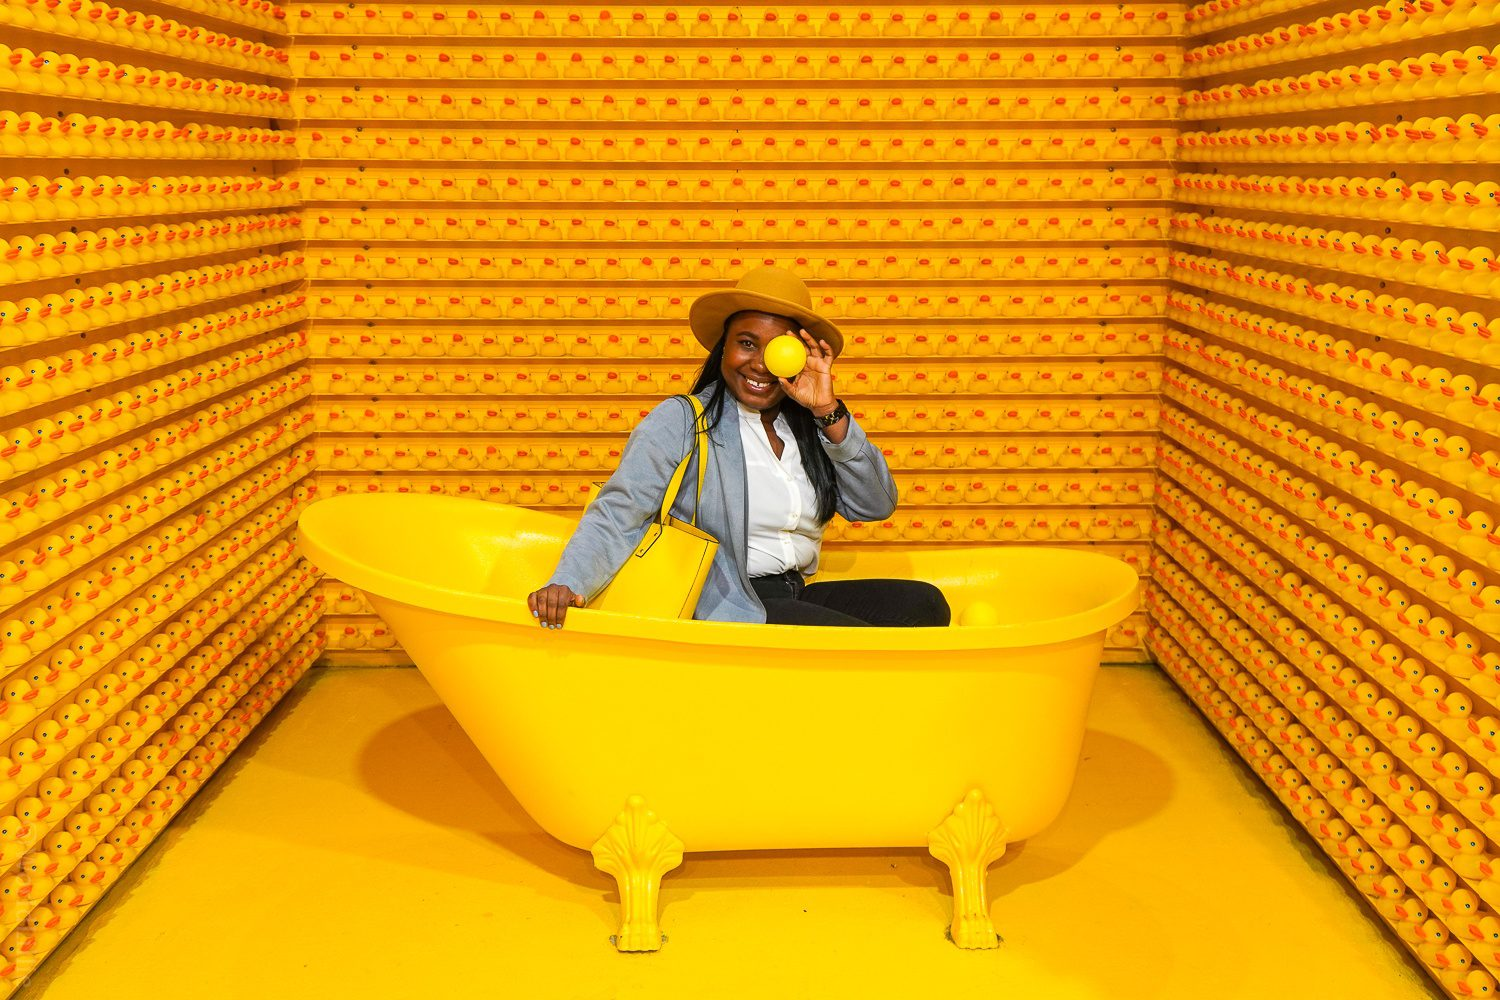 Rubber ducky walls and yellow bathtub with balls at Happy Place